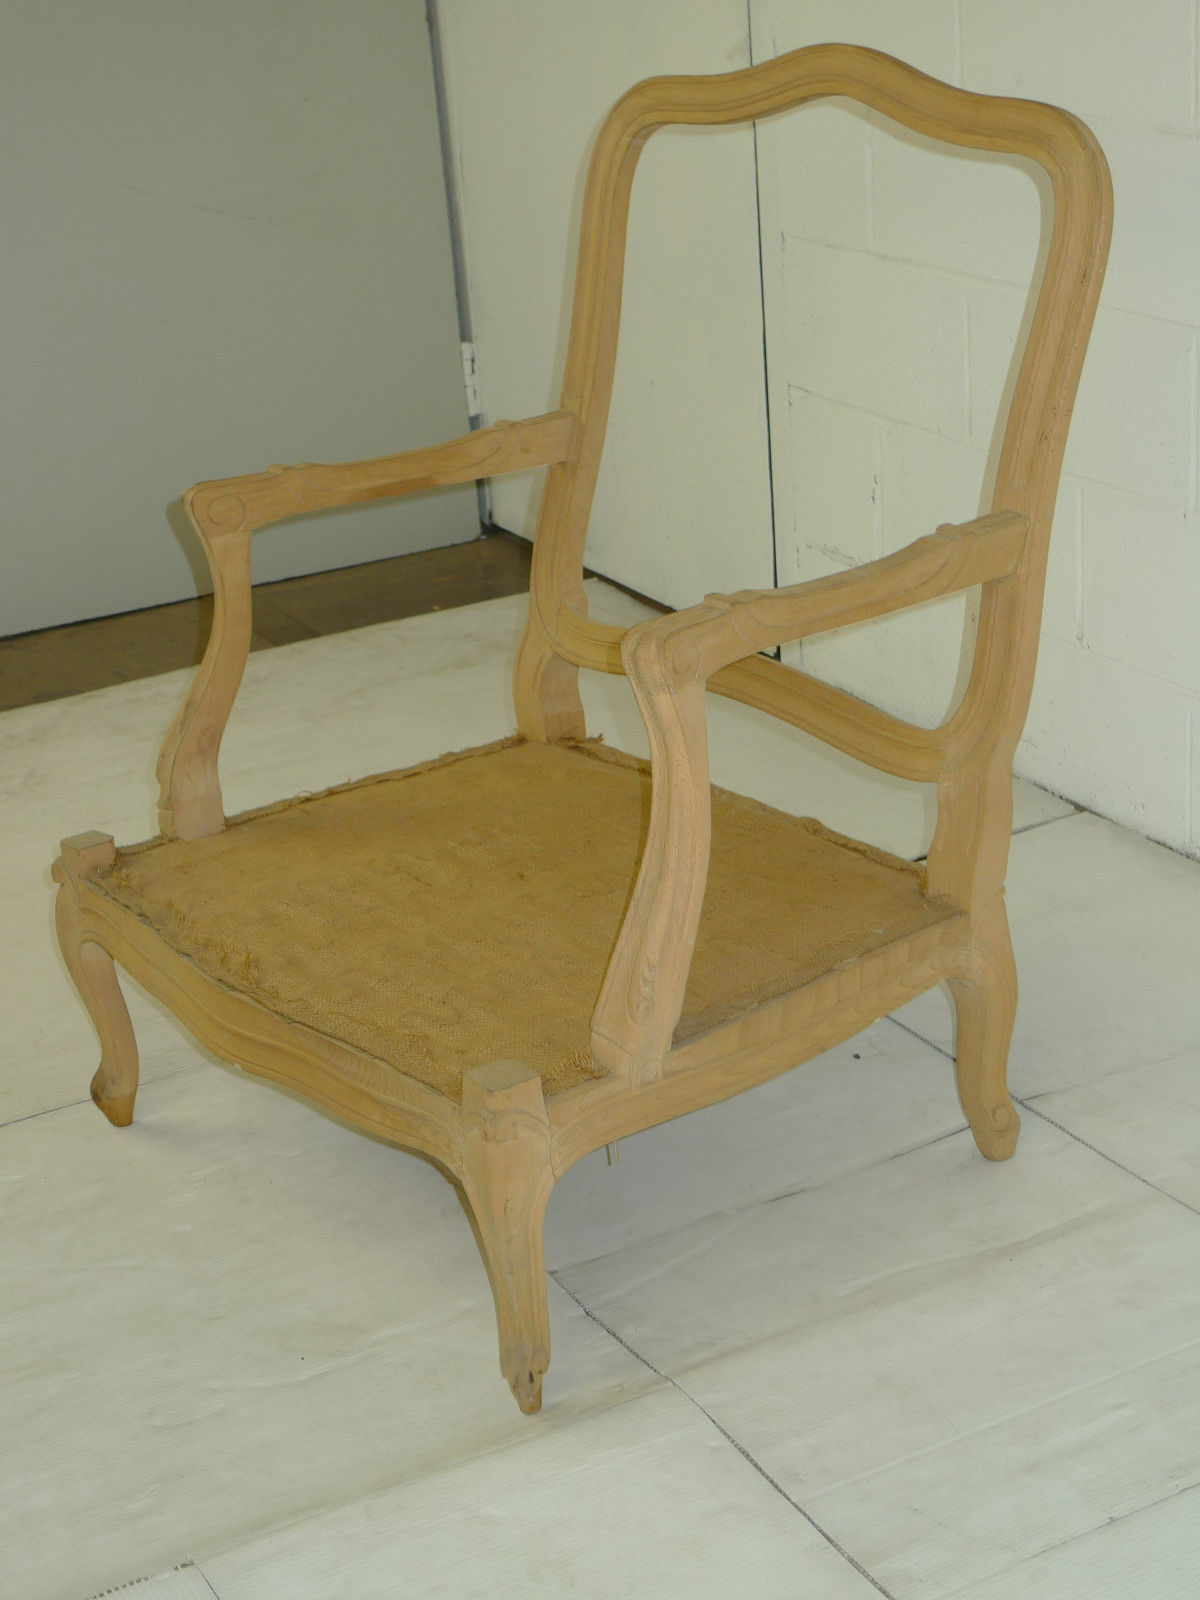 Louis Xv Provincial Style Oak Chair Frame Ready For Upholstery Louis